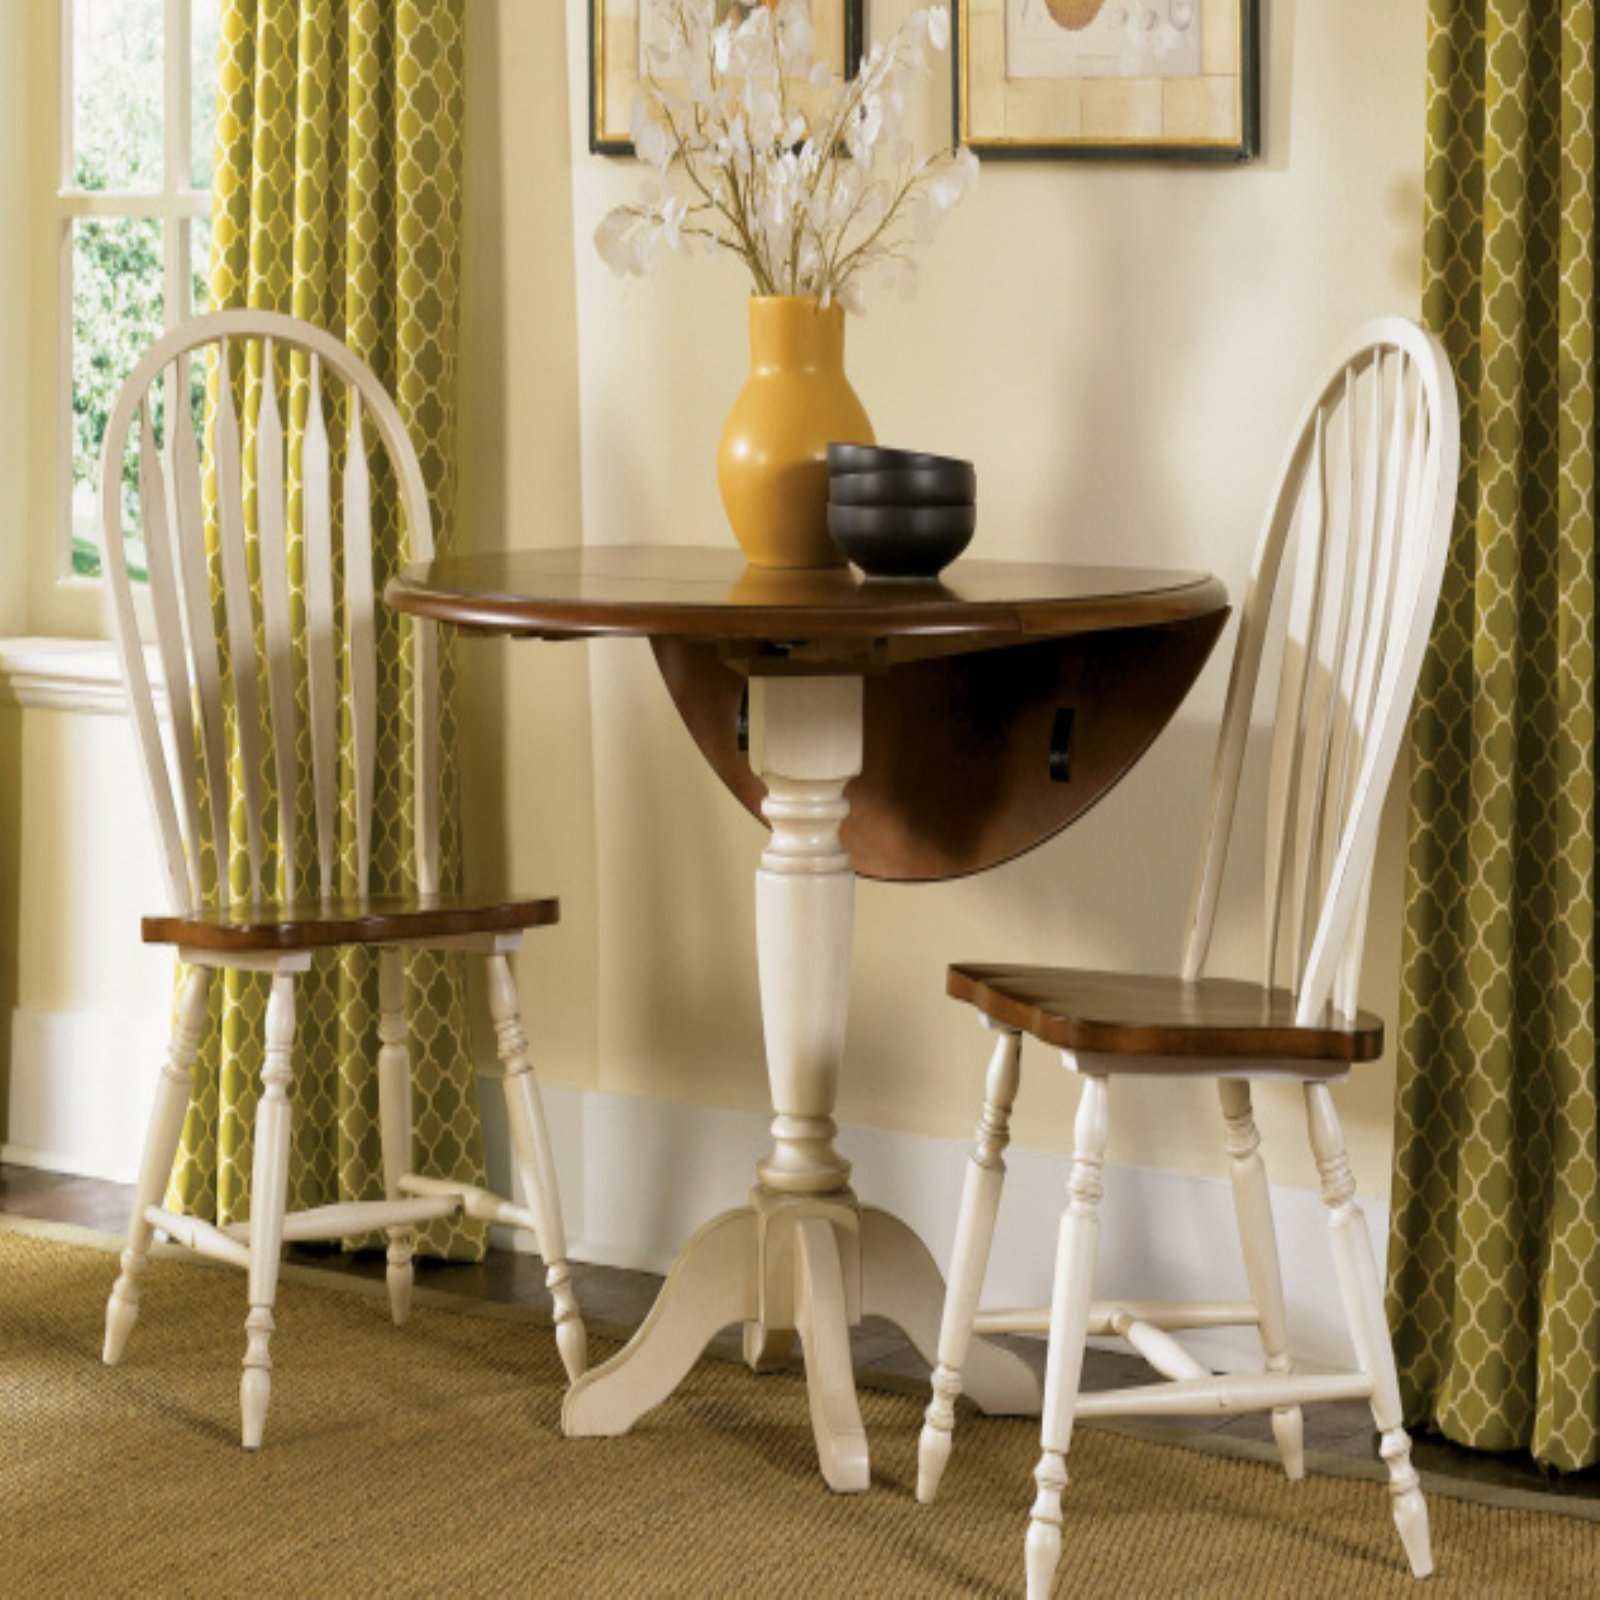 Liberty Furniture Low Country Sand 3 pc. Drop Leaf Table Set with Windsor Chairs